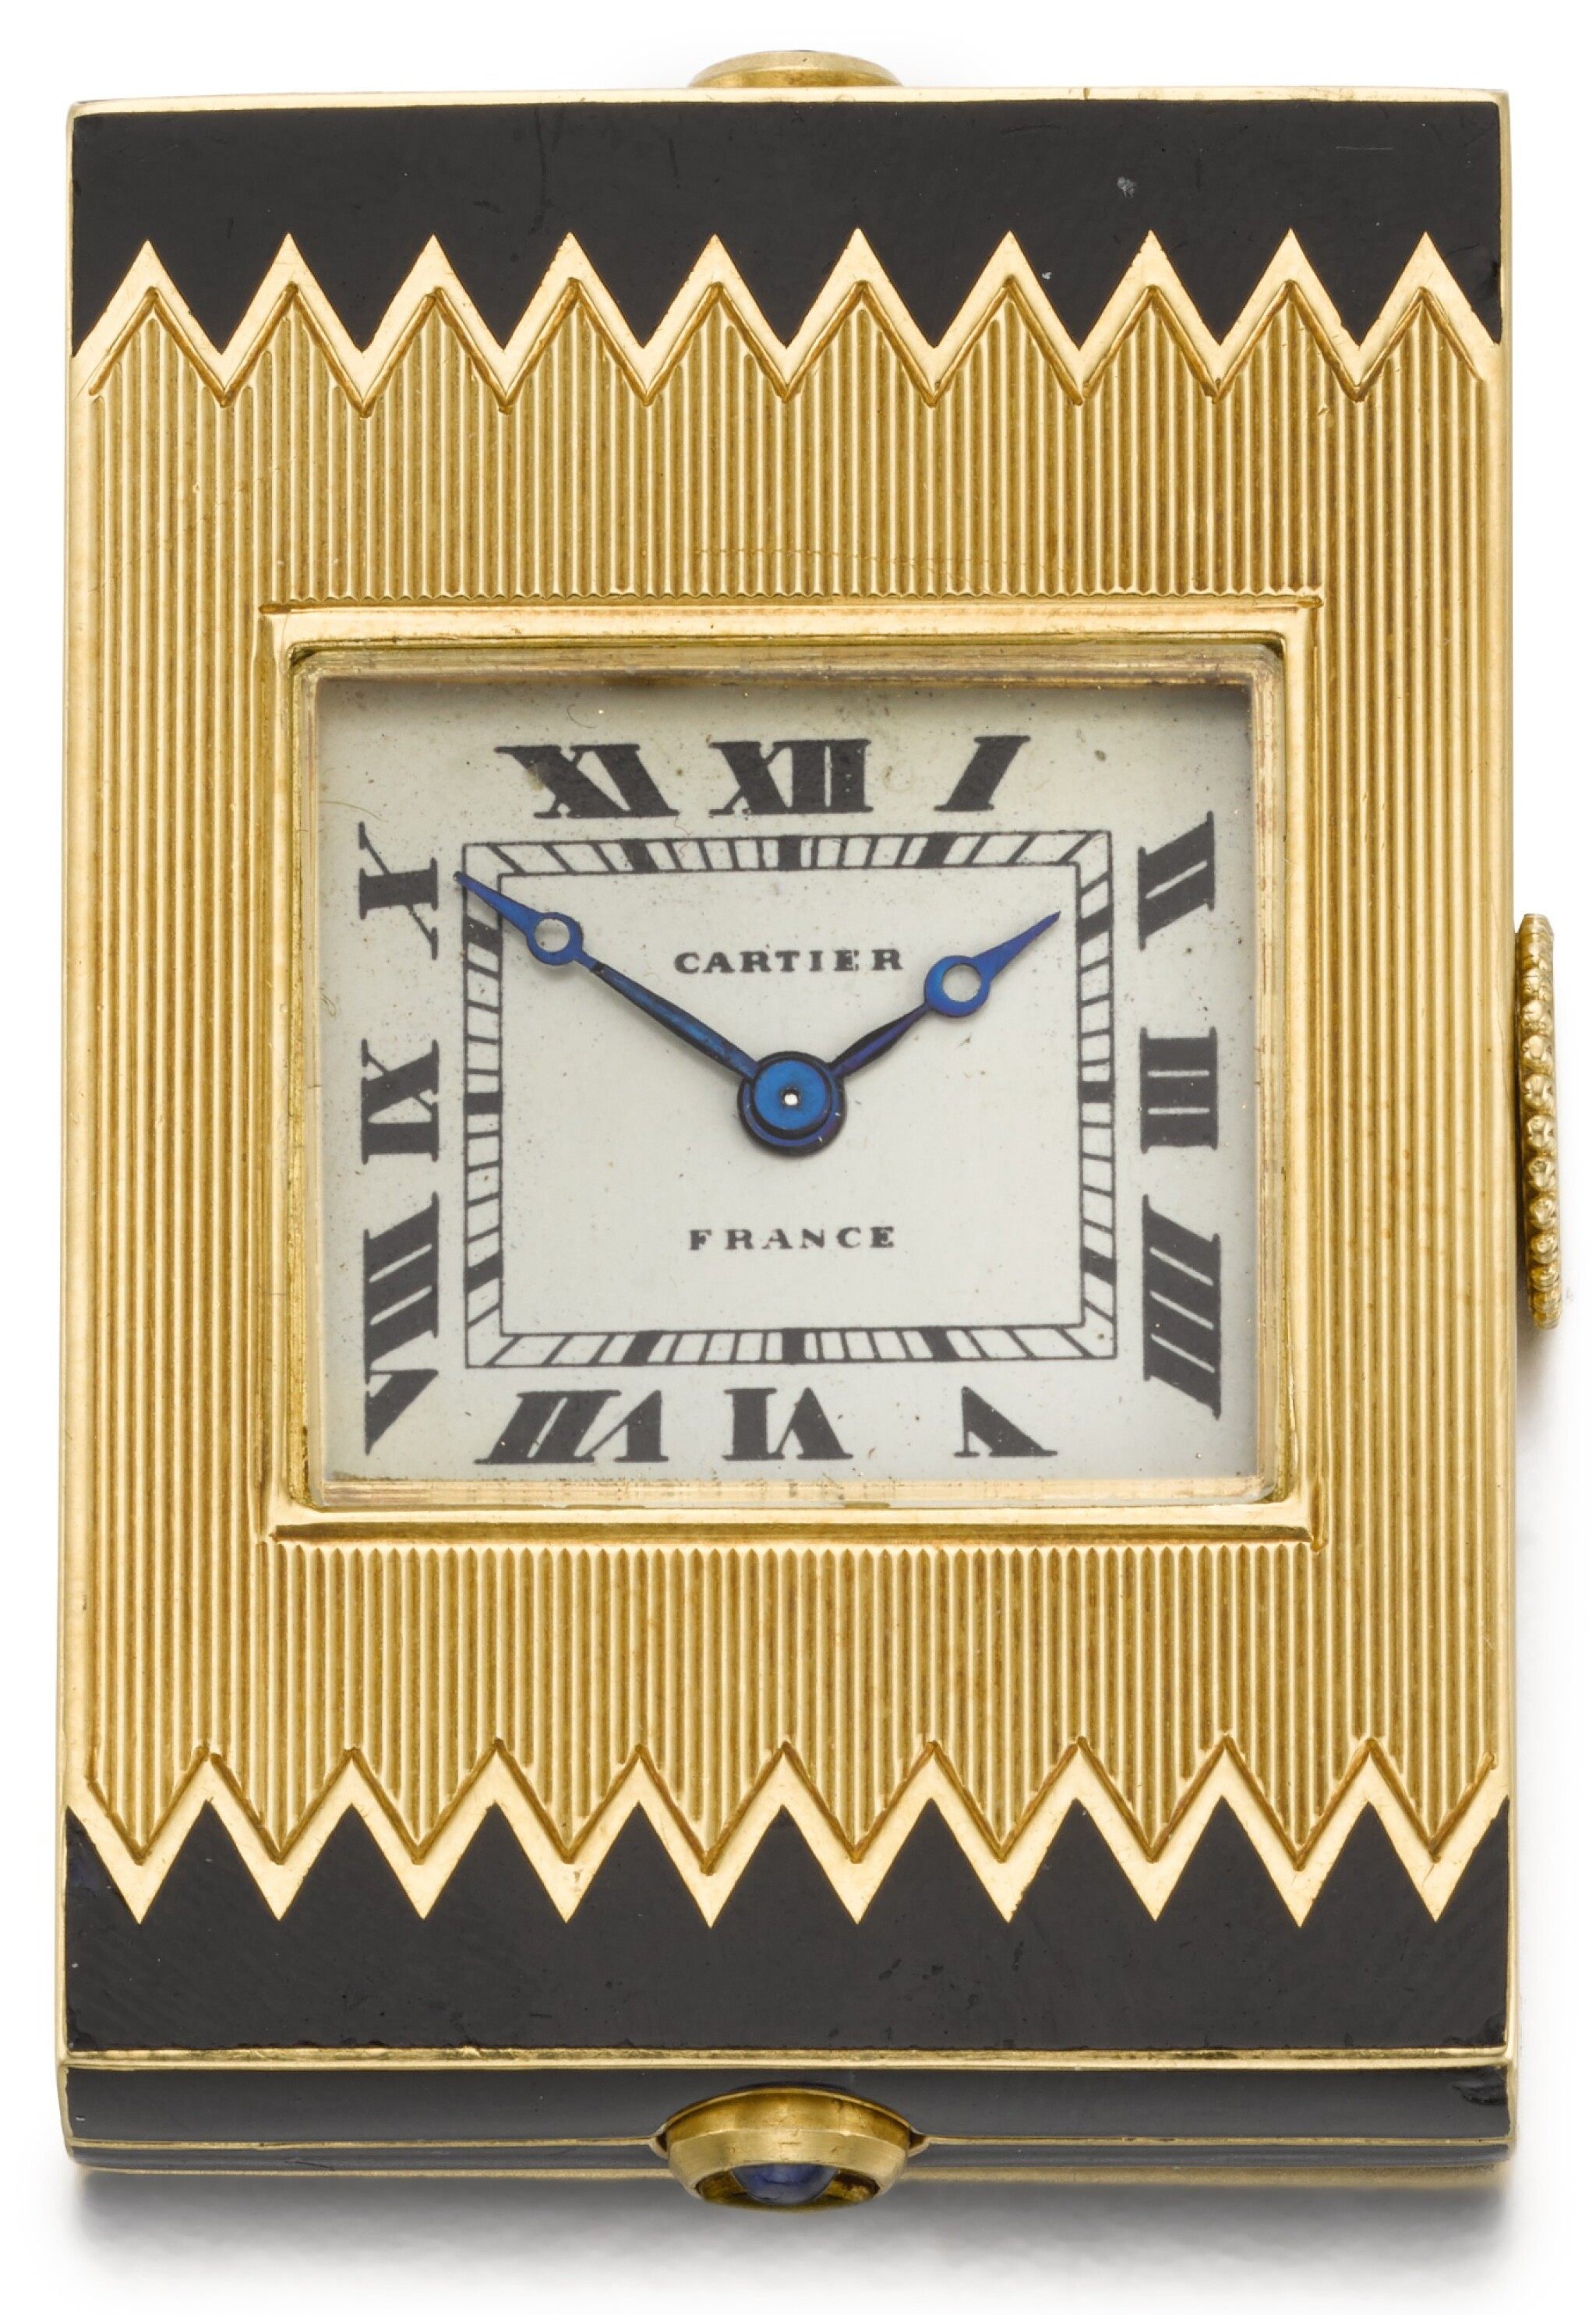 View full screen - View 1 of Lot 77. CARTIER, FRANCE   [卡地亞,法國]  | A GOLD AND ENAMEL PURSE WATCH WITH SPRUNG SHUTTERS  CIRCA 1930, ÉCLIPSE   [「ÉCLIPSE」 黃金畫琺瑯方形懷錶備彈簧開關,年份約1930].